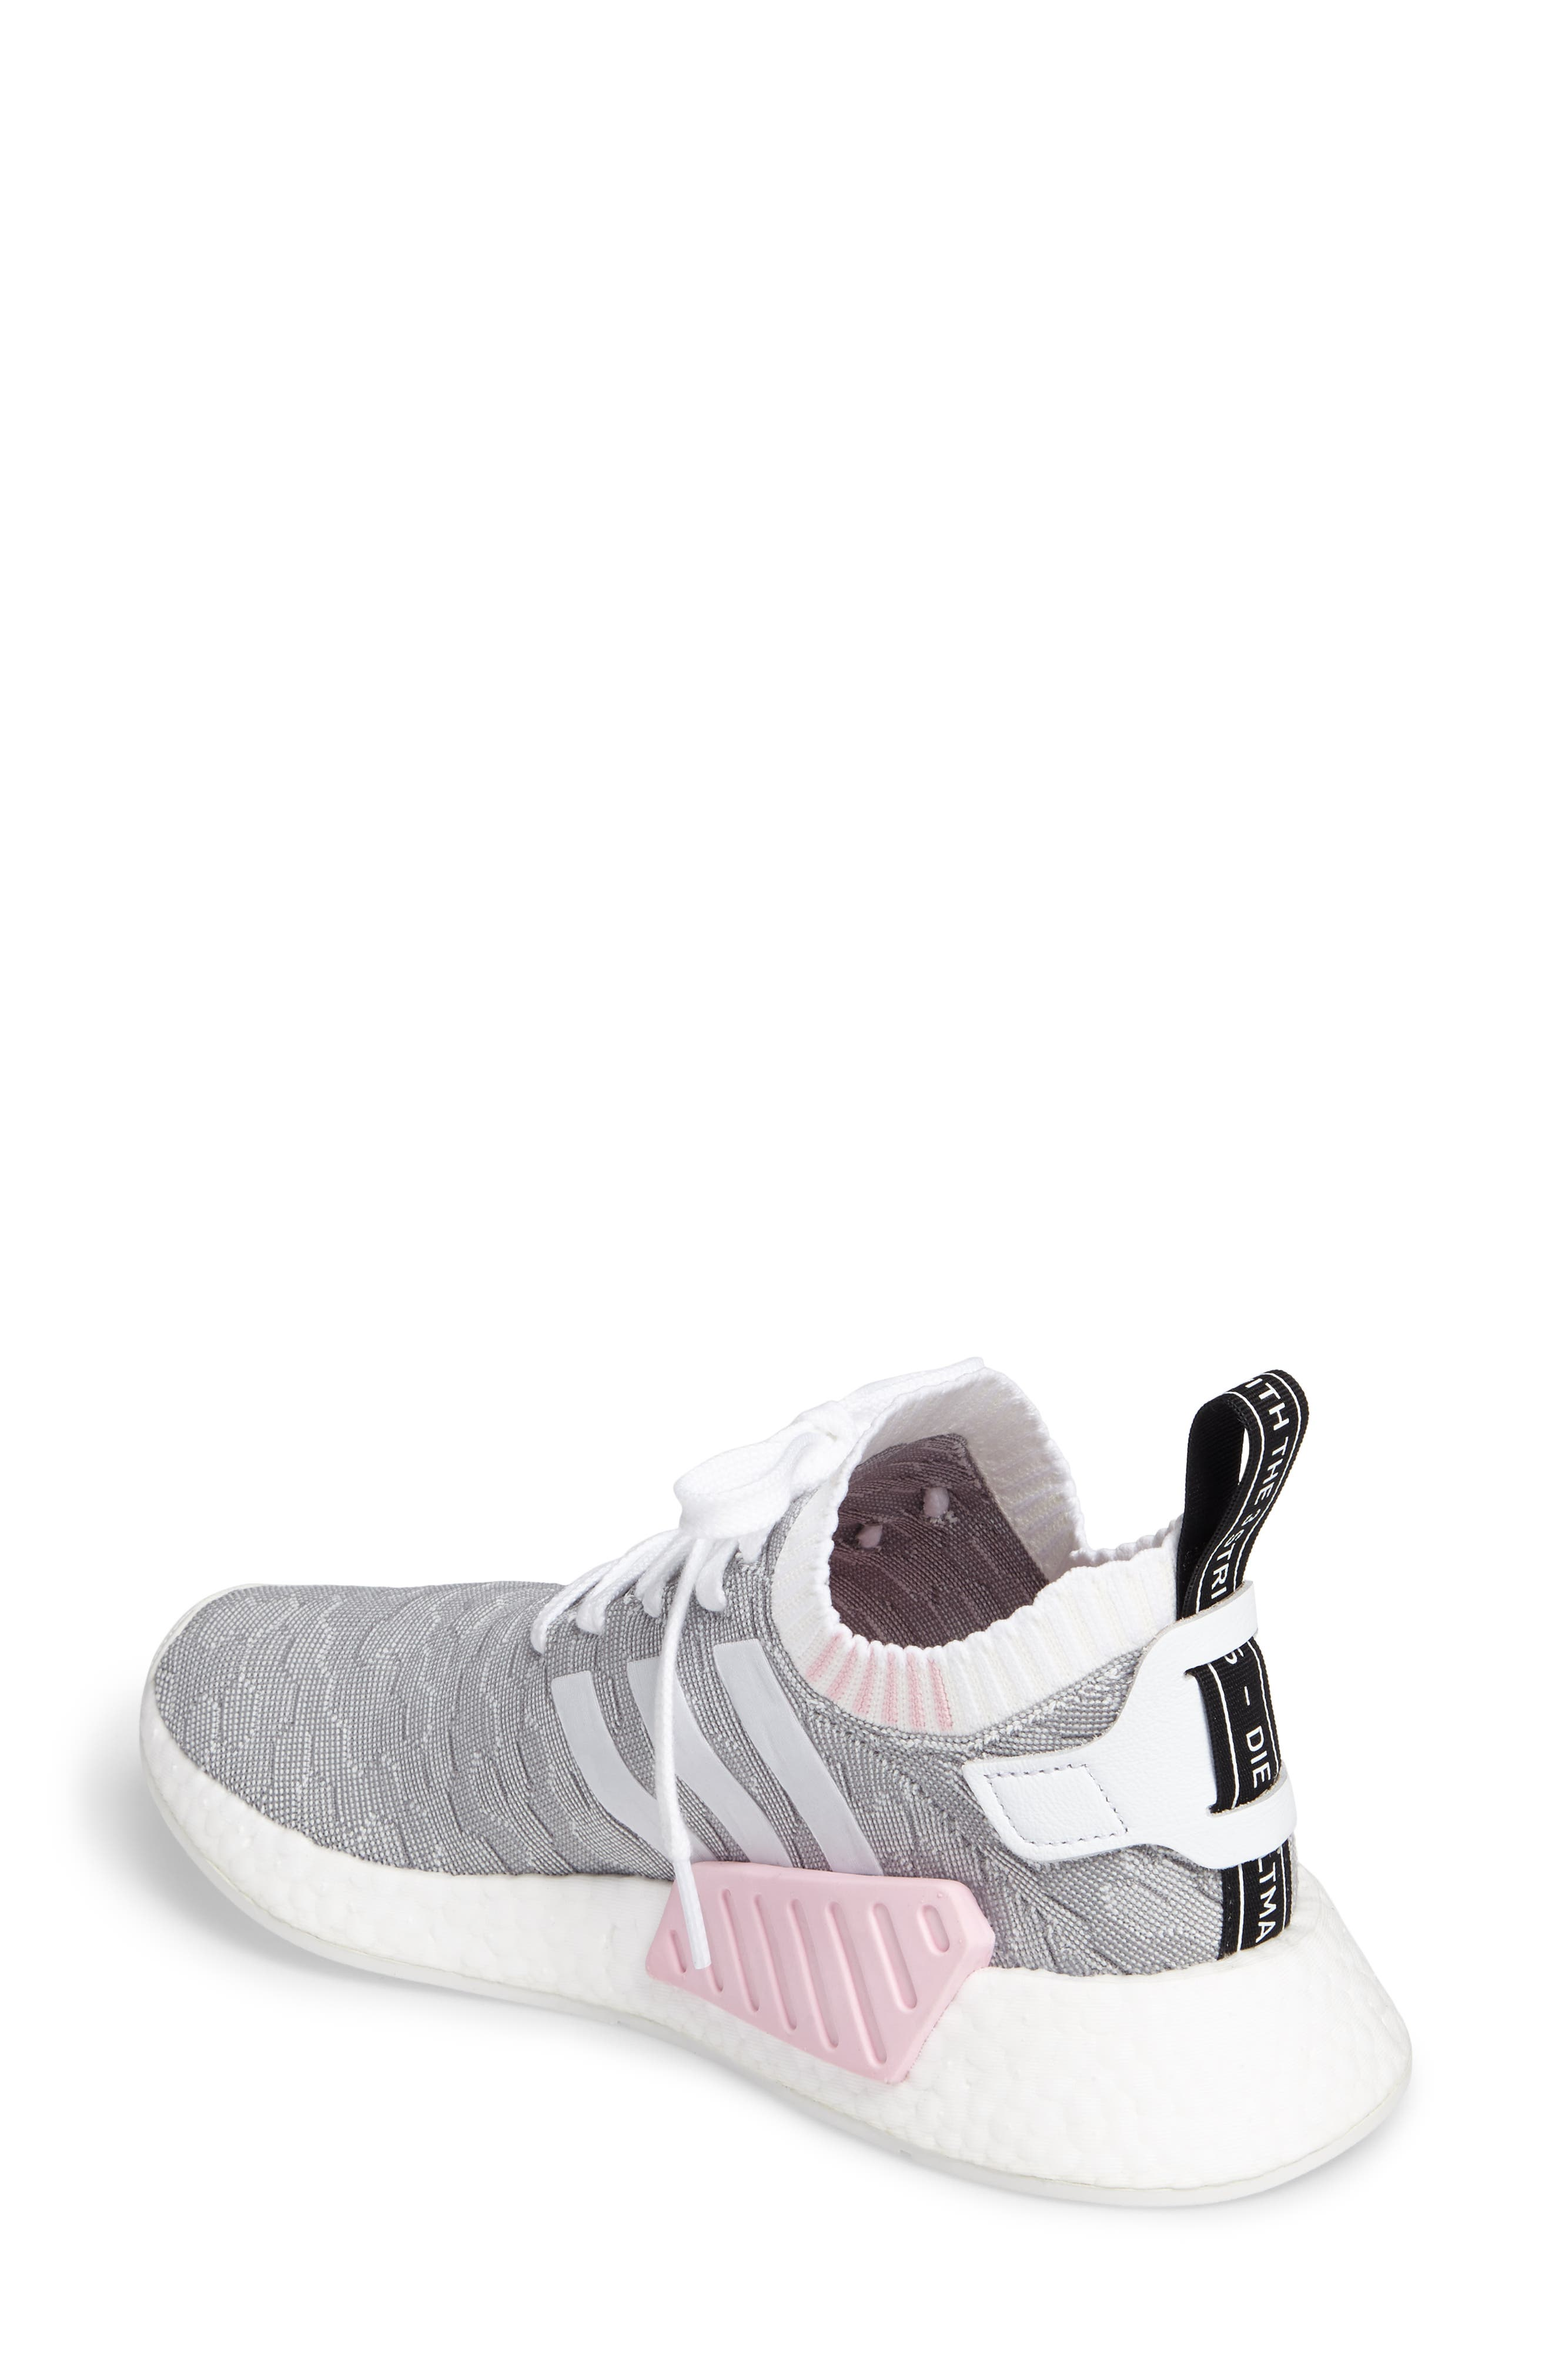 White Sneakers adidas for Women: Clothing, Accessories \u0026 Shoes | Nordstrom